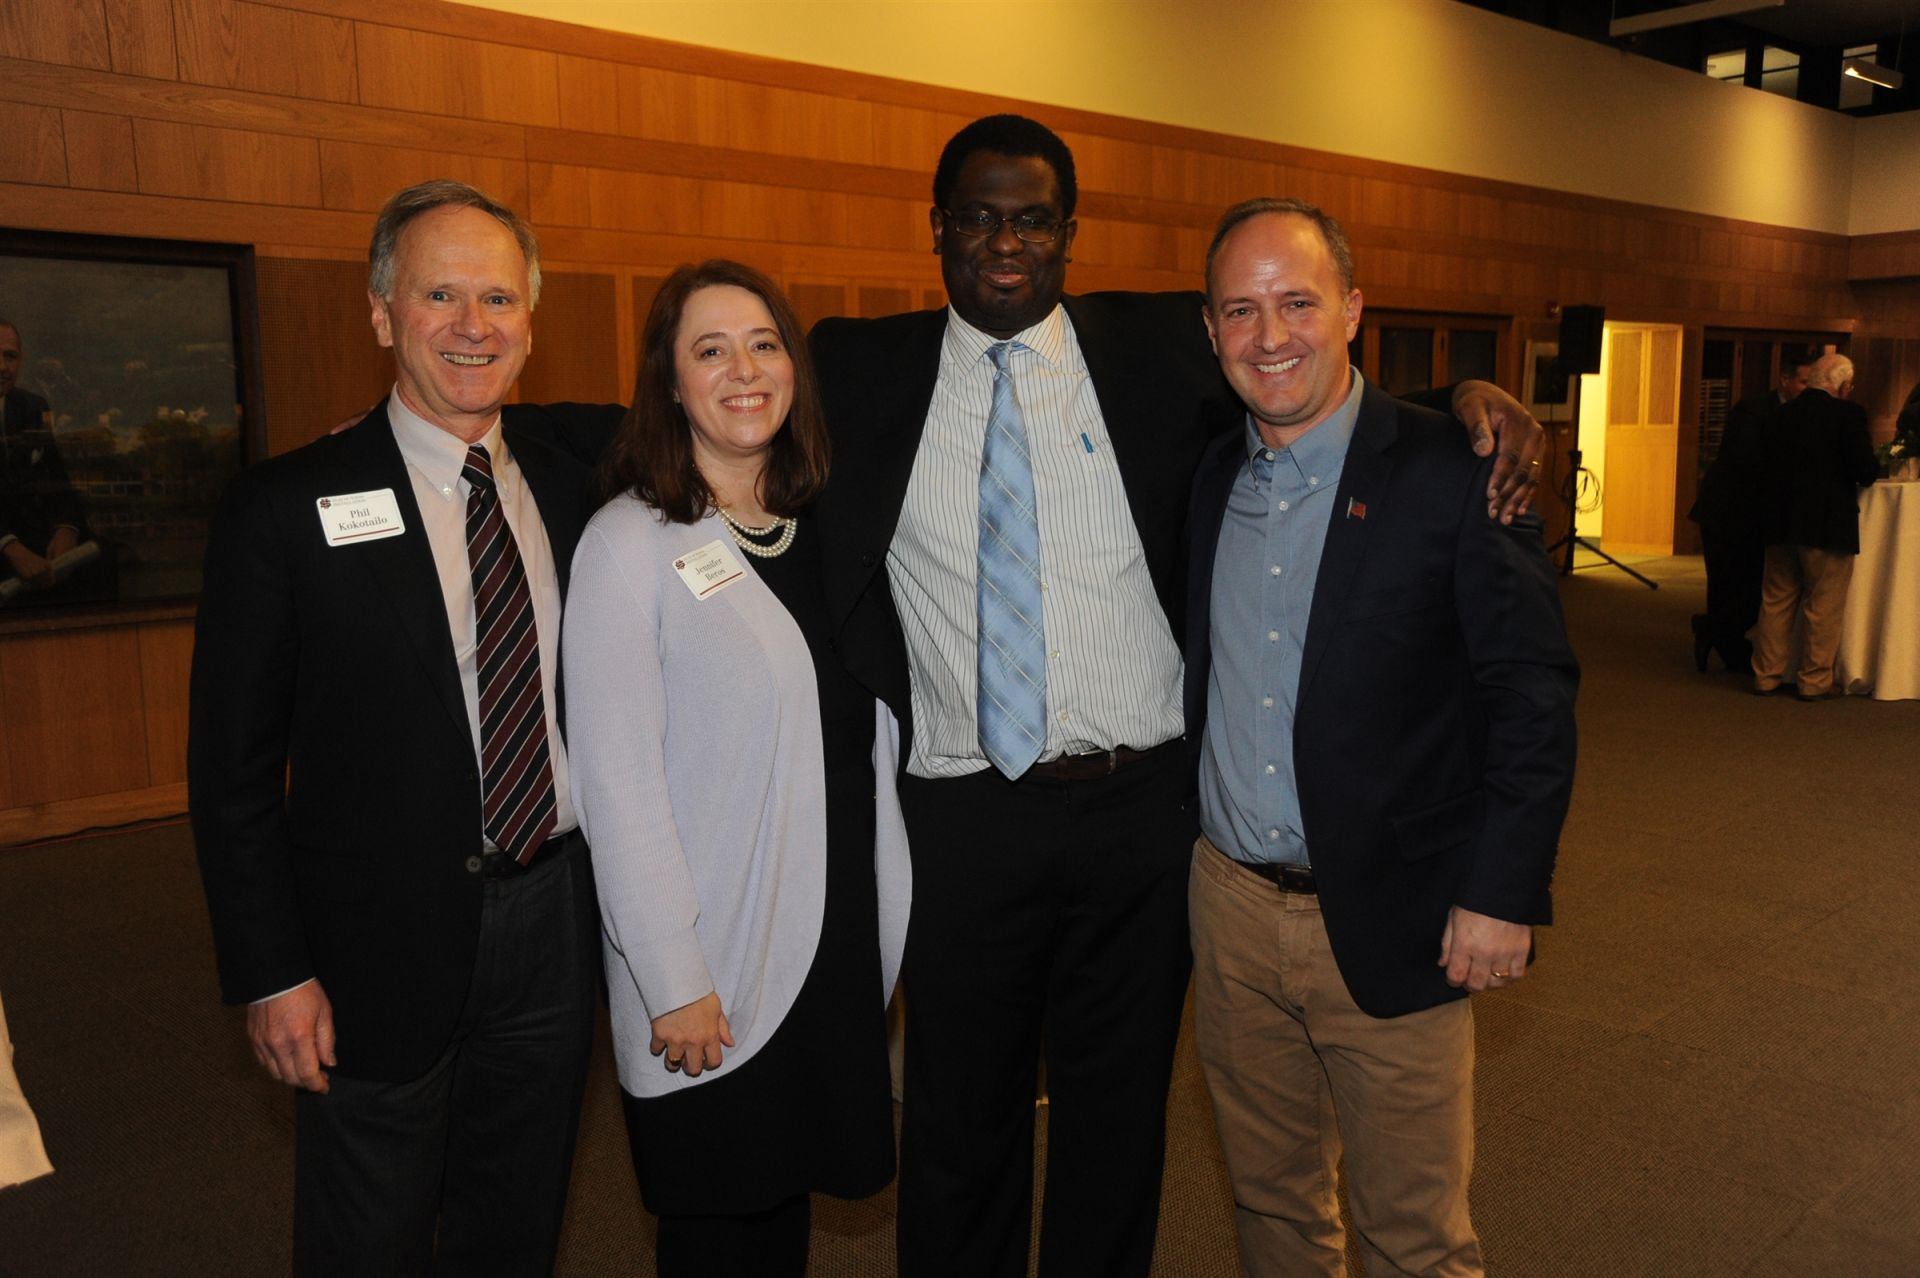 Past faculty member Dr. Philip Kokotailo with current members Jen Beros, James Lewis '00 and Mitch Strachan